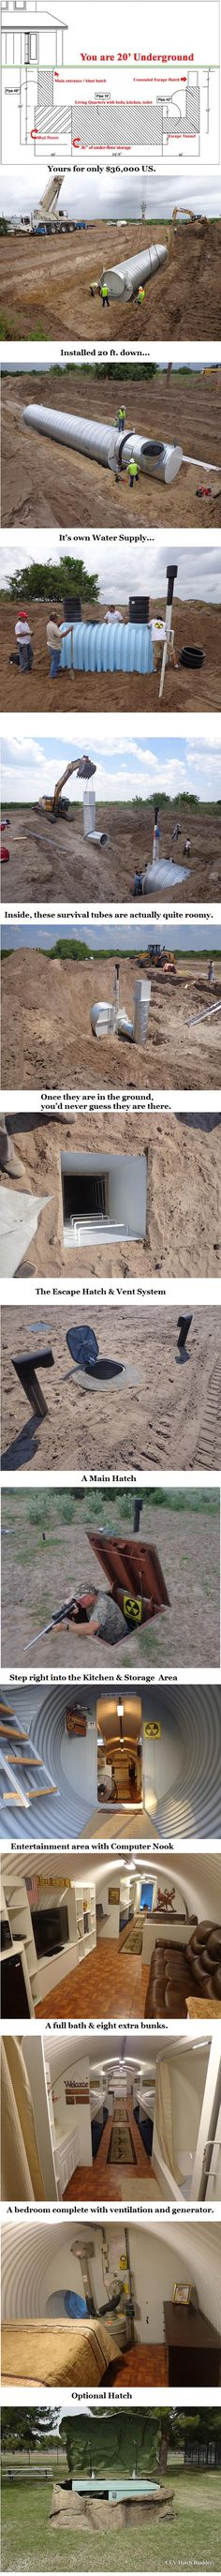 Atlas Survival Shelters If you fear a nuclear war (or even just the future)…